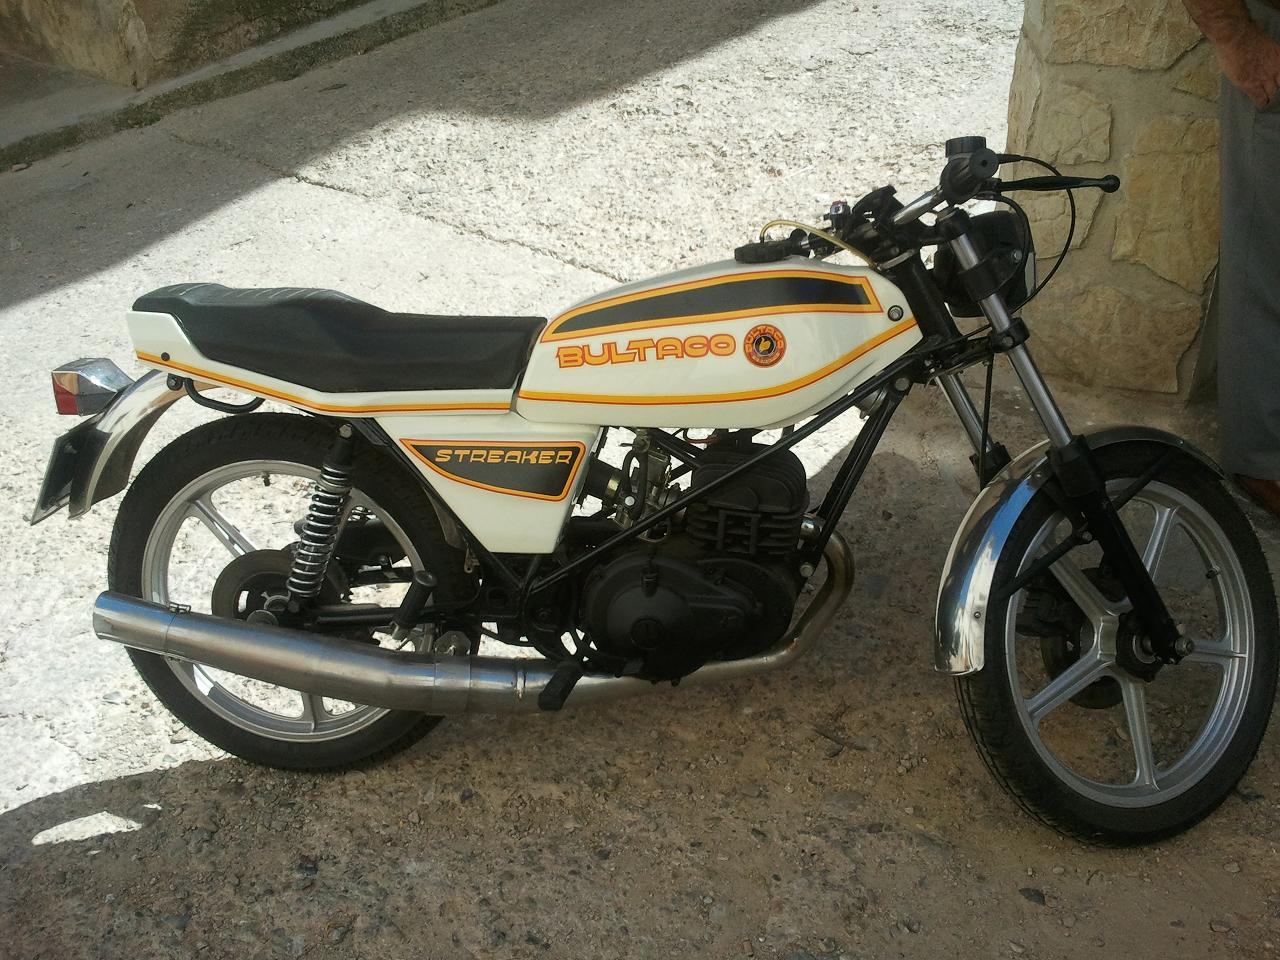 Bultaco streaker photo - 4